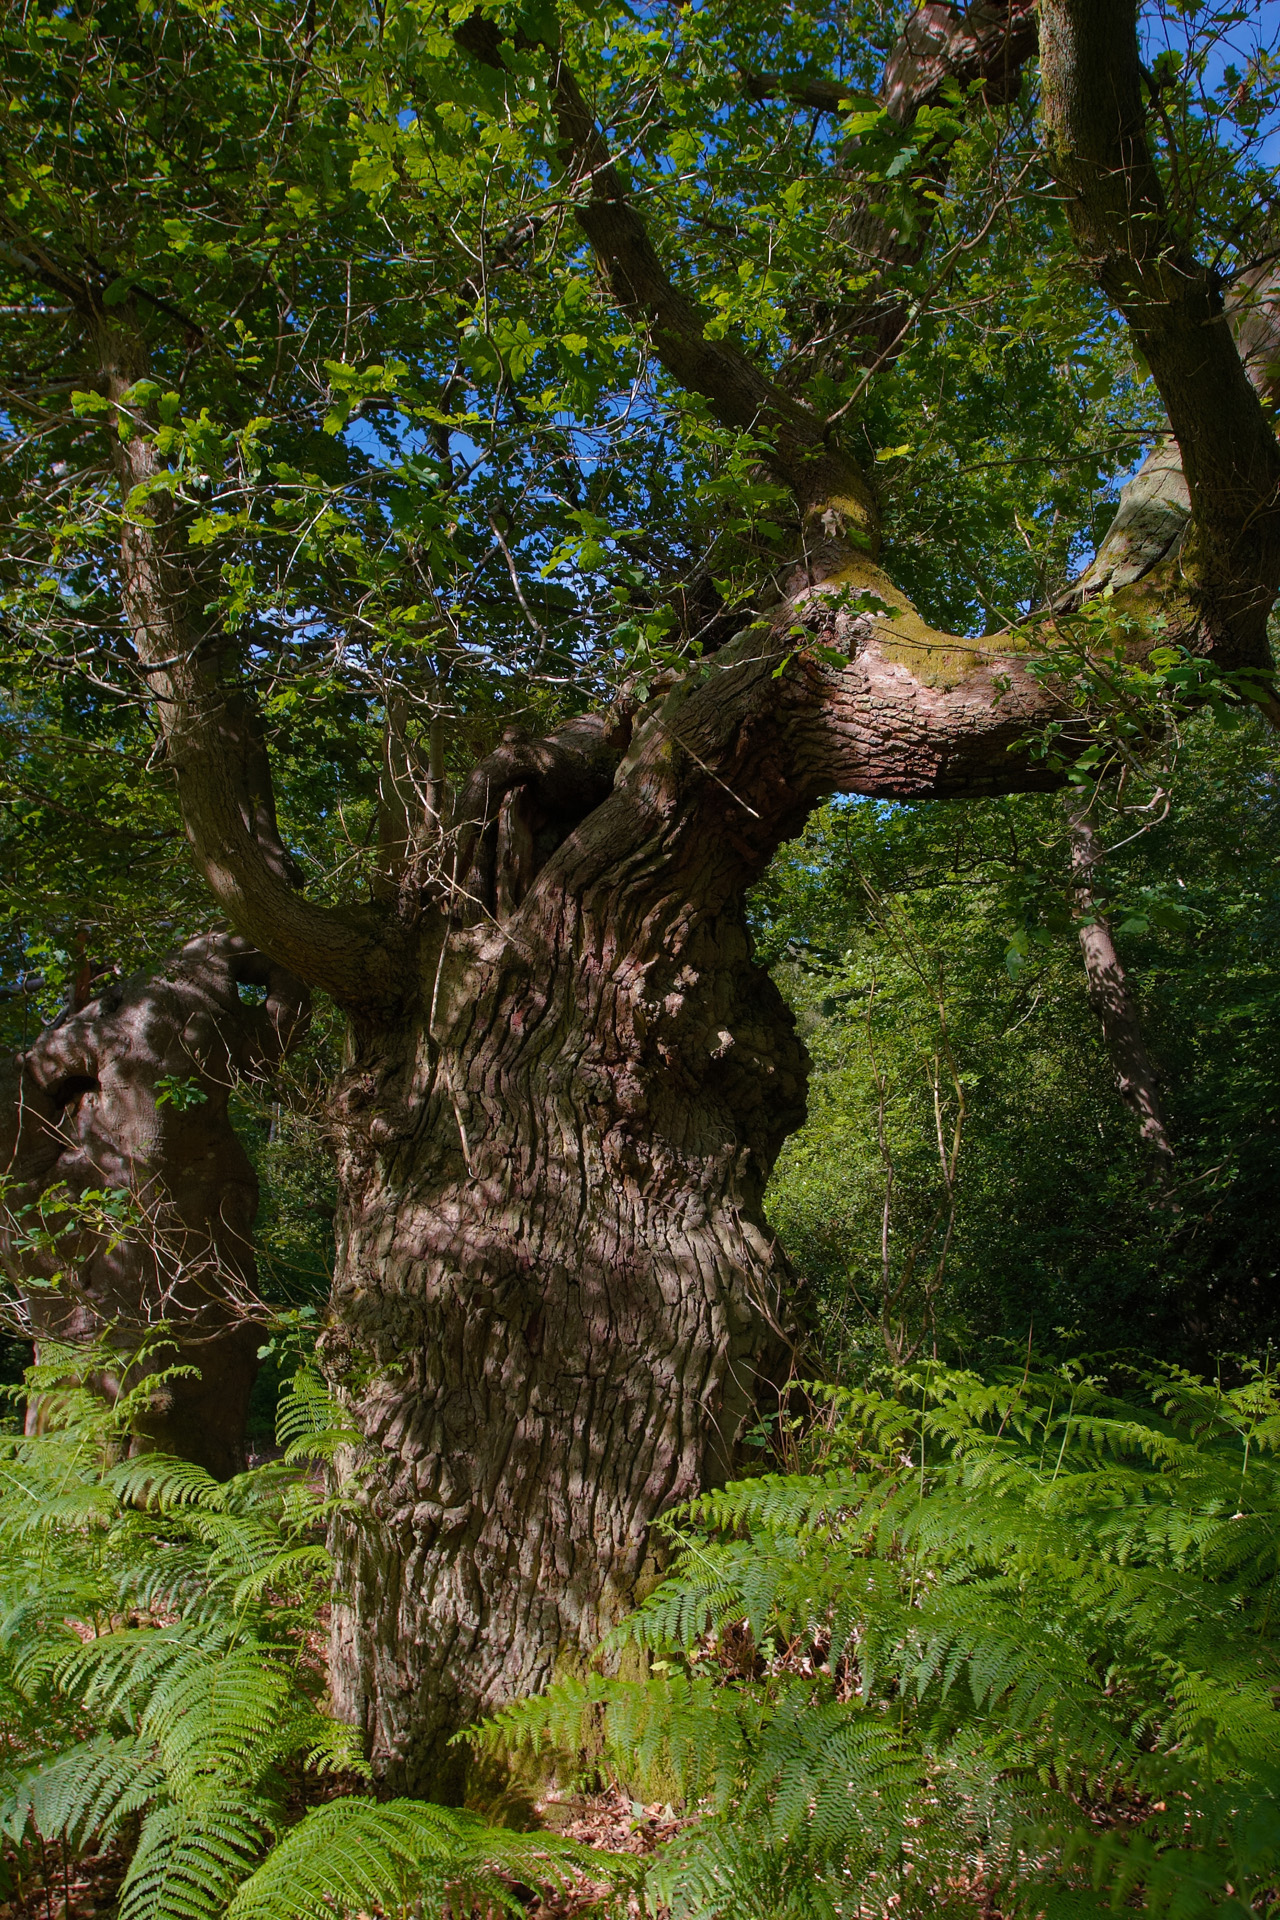 Old Oak tree at Burnham Beeches ancient woodland